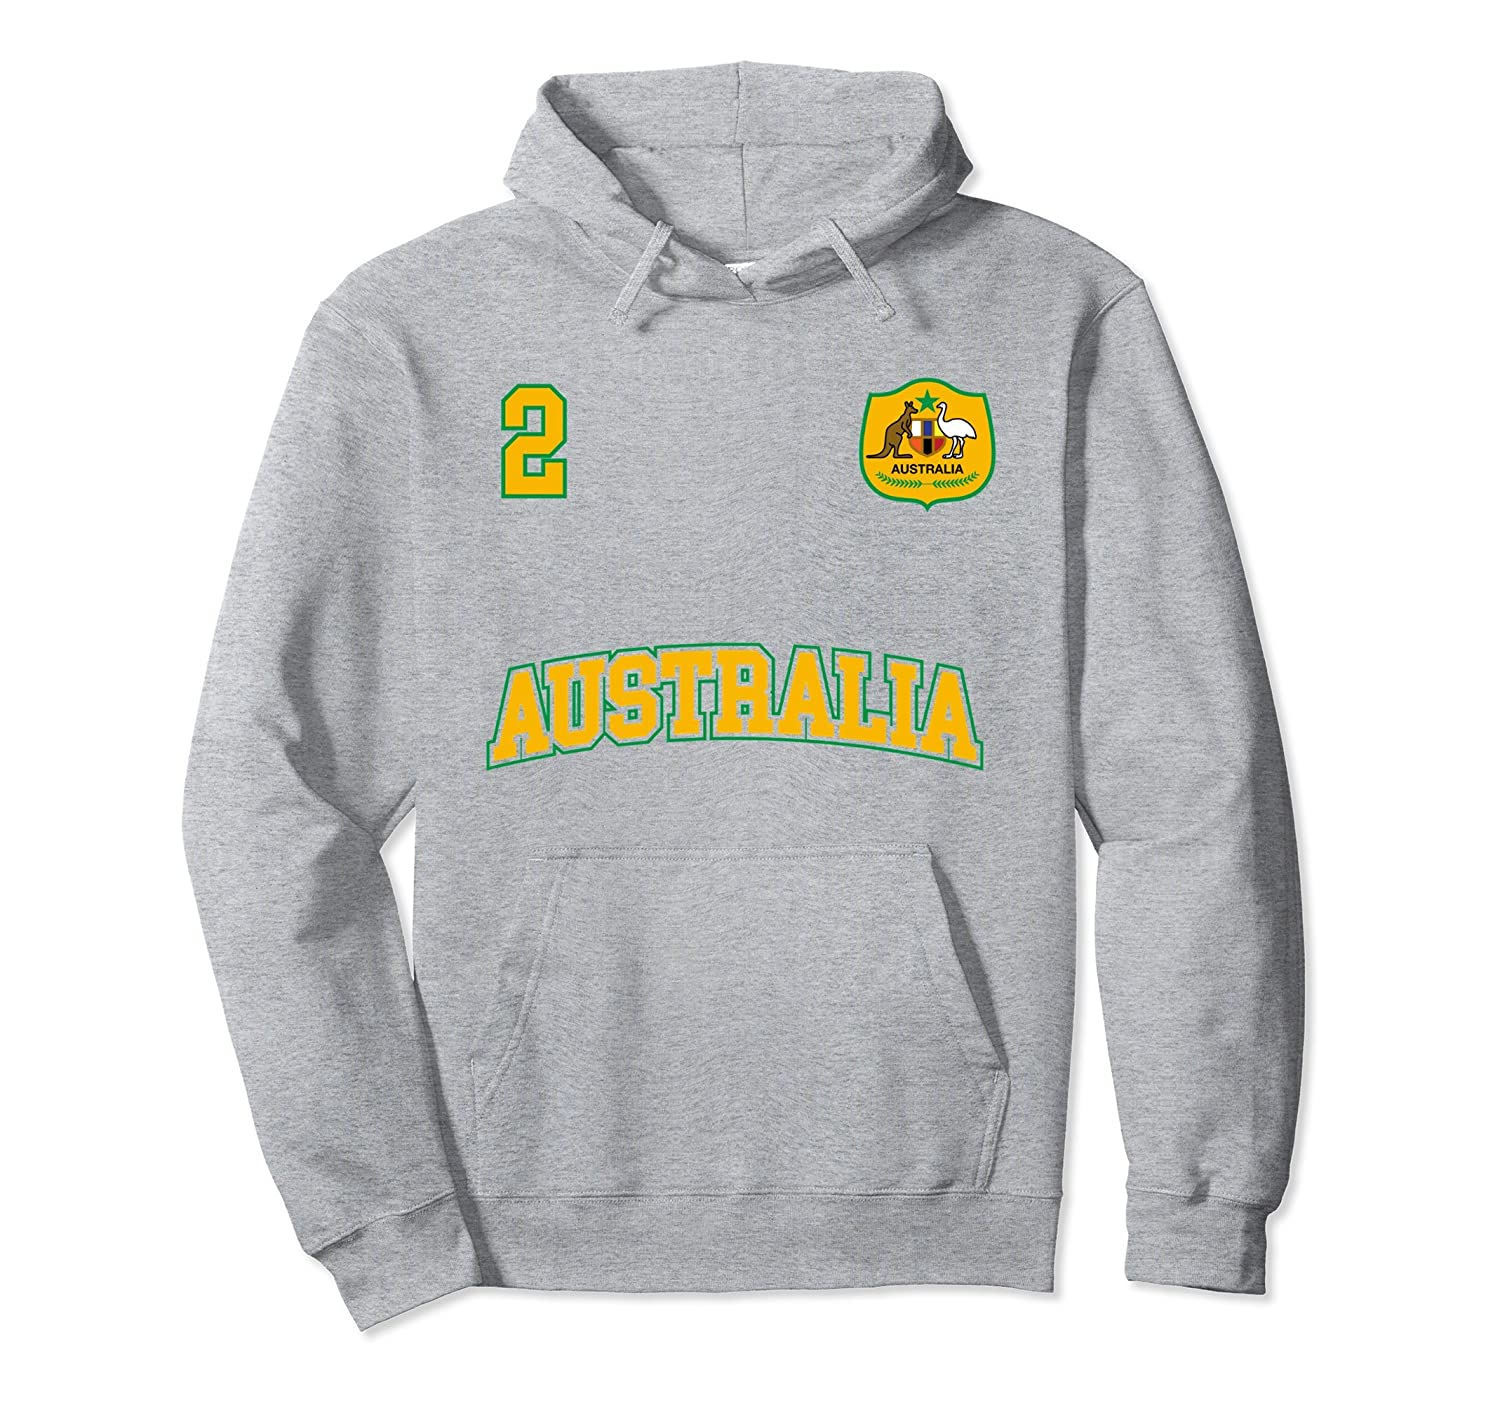 Australia Soccer Hoodie No. 2 Australian Flag Sports Team-ah my shirt one  gift 06ff1effc